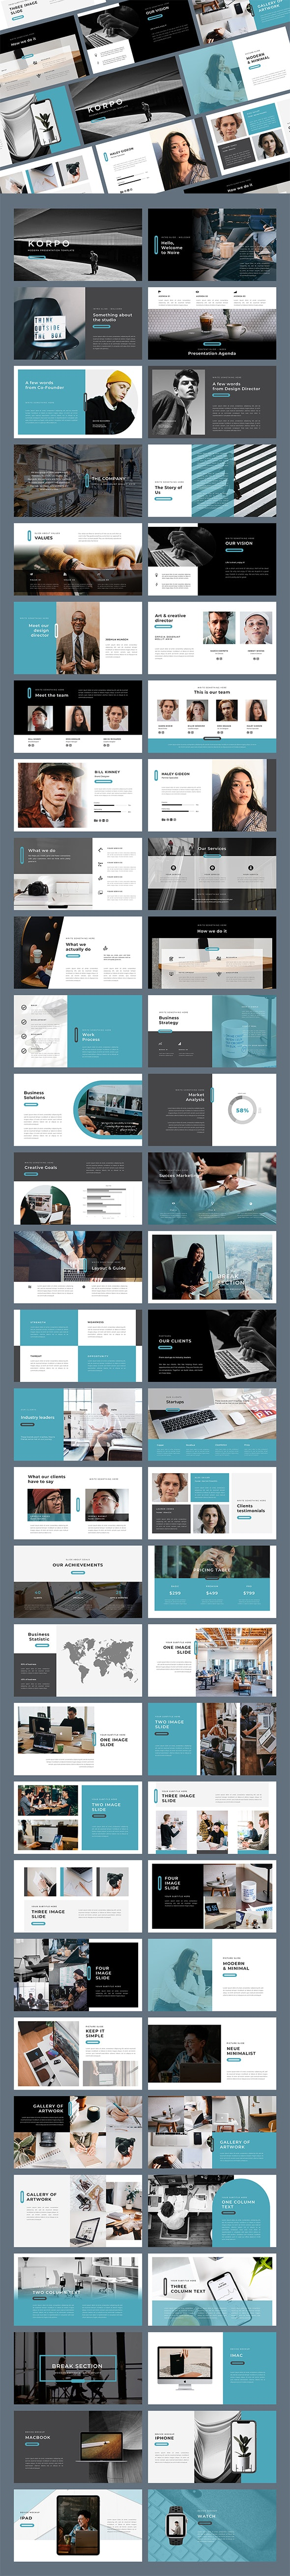 Korpo Google Slides Template - Google Slides Presentation Templates